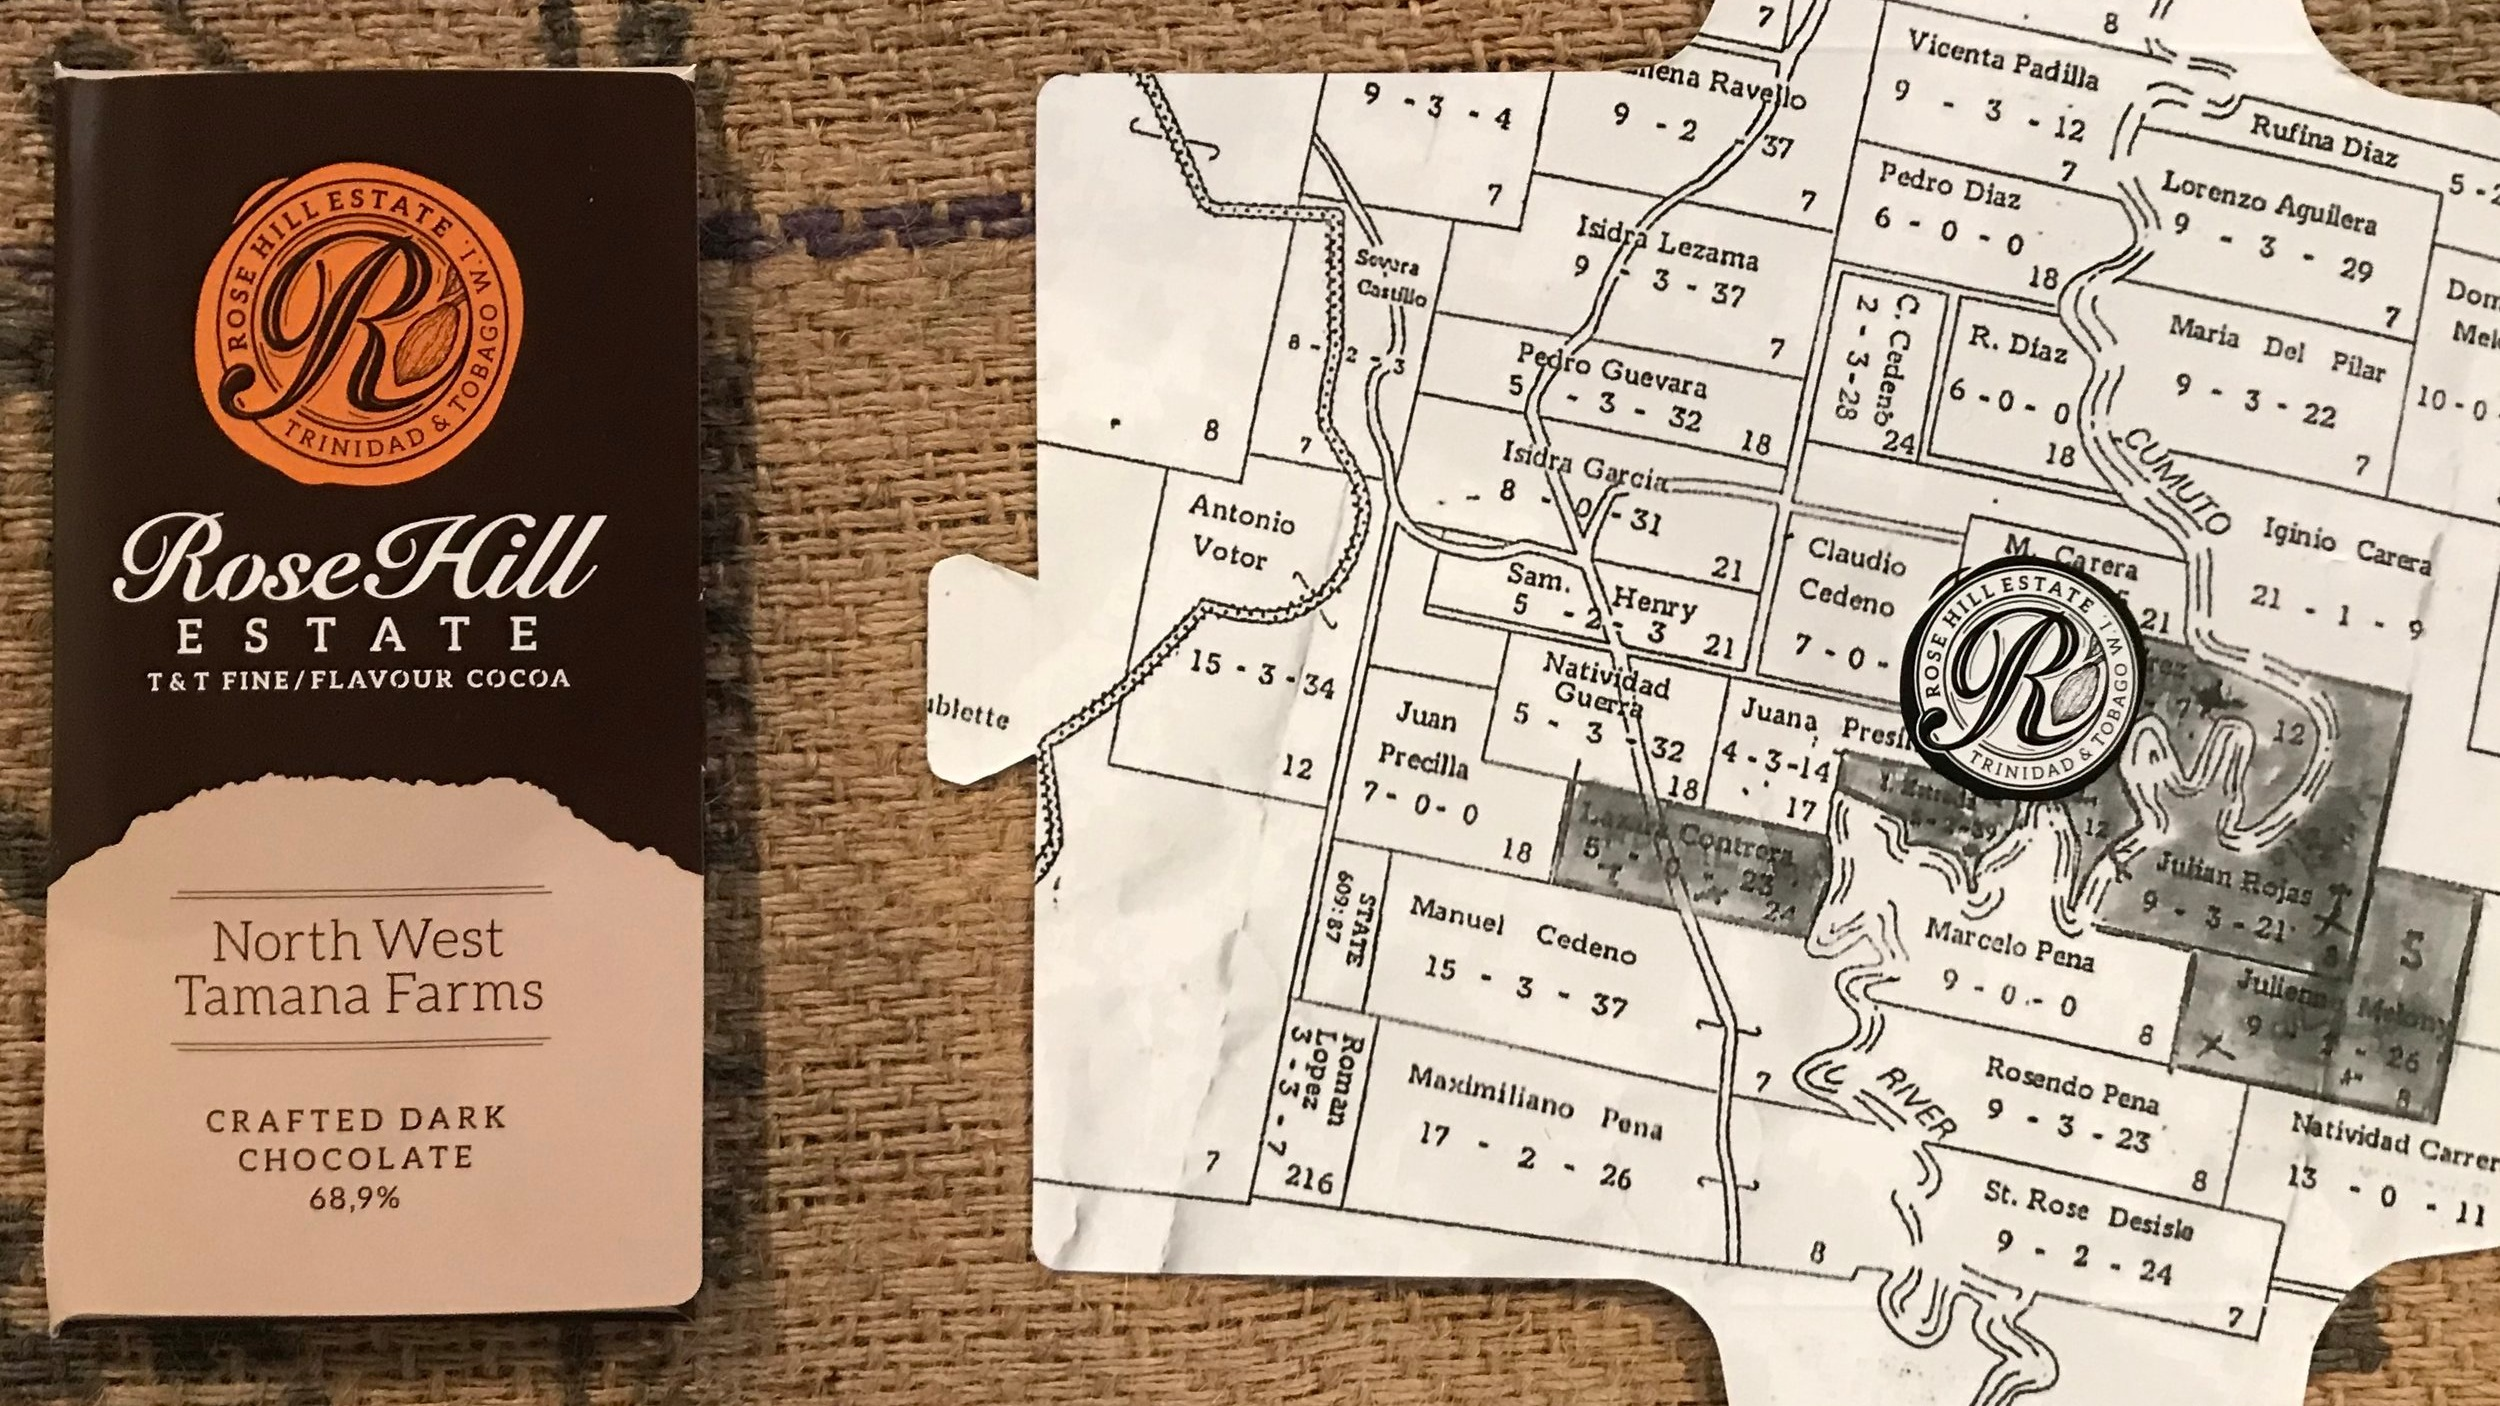 Check out our new packaging and find us on the map! -